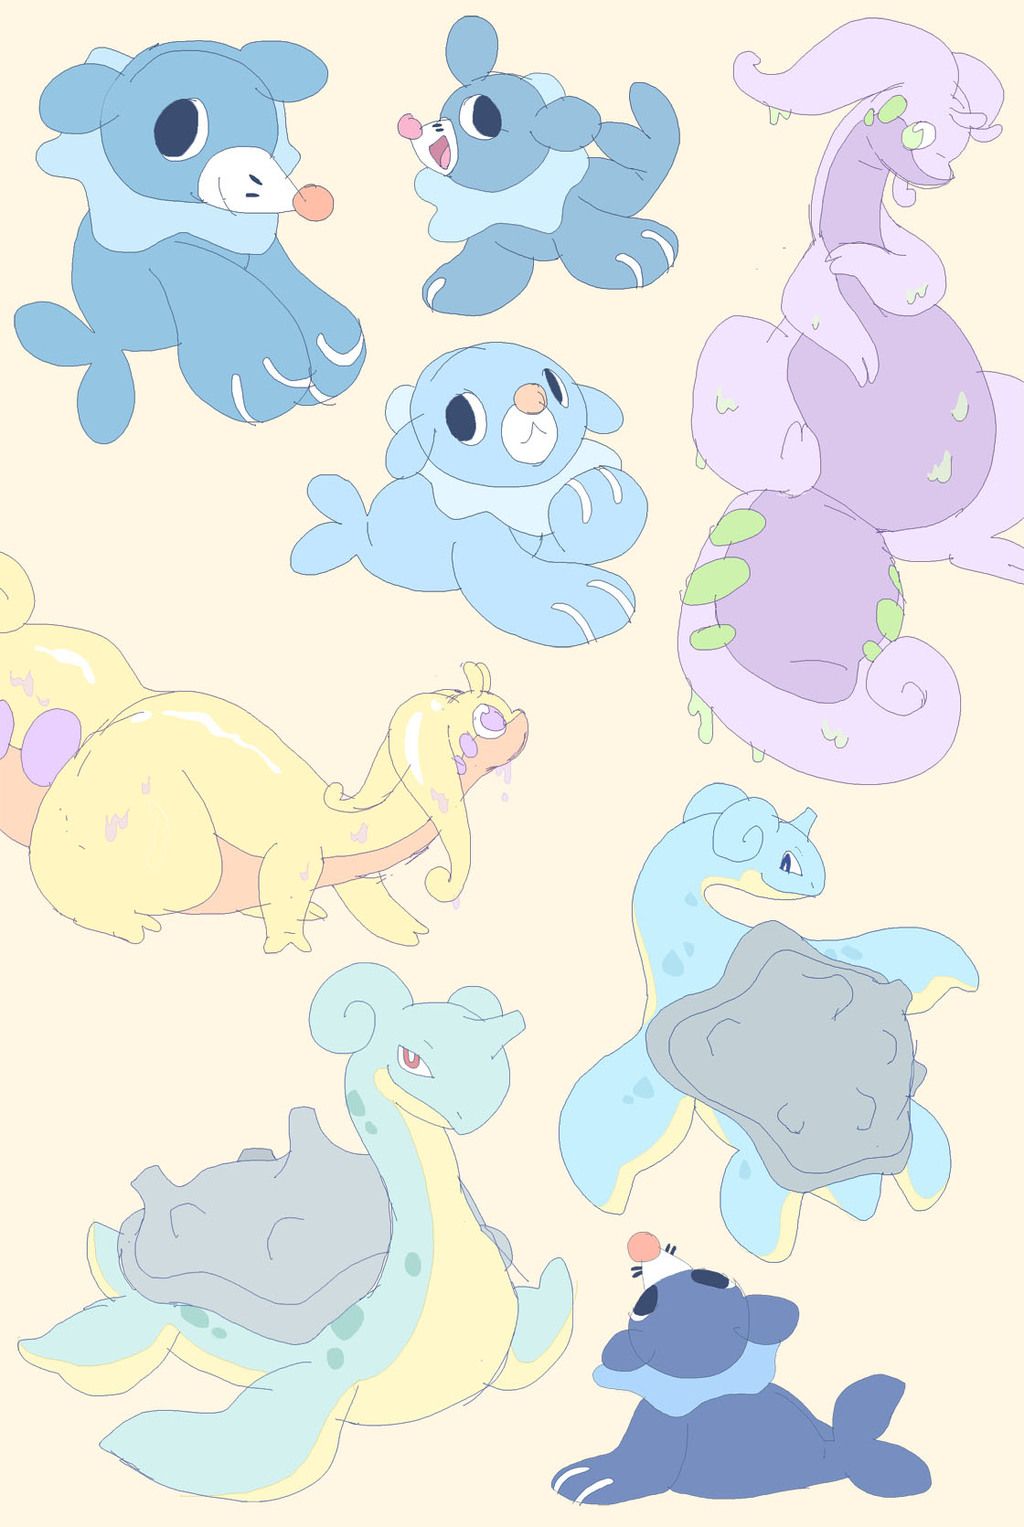 Most recent image: more pokes